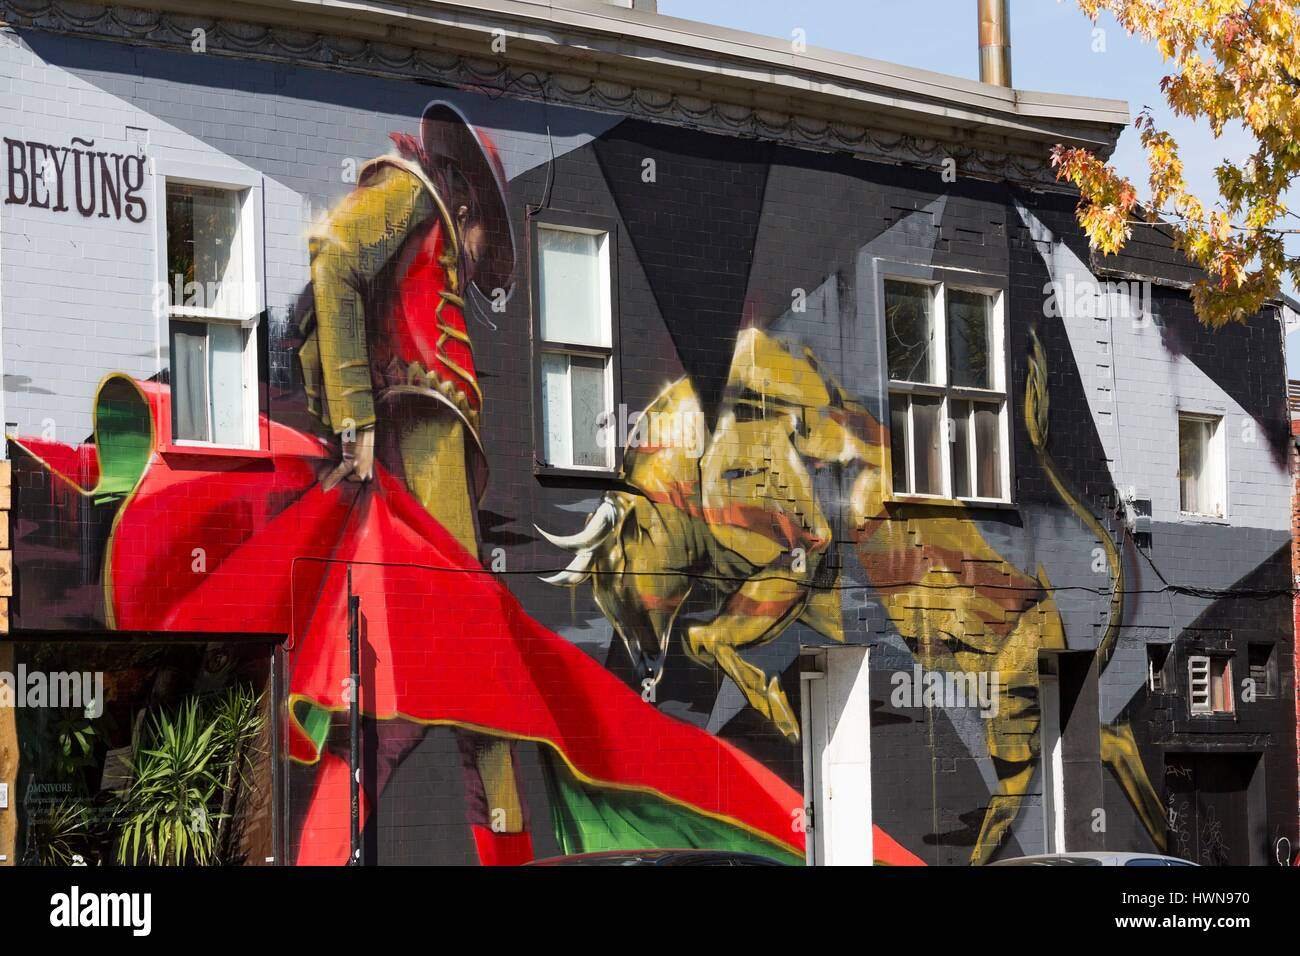 Canada, Province of Quebec, Montreal Bryan Beyung festival Mural 2014 facing the park of Portugal on the Plateau - Stock Image